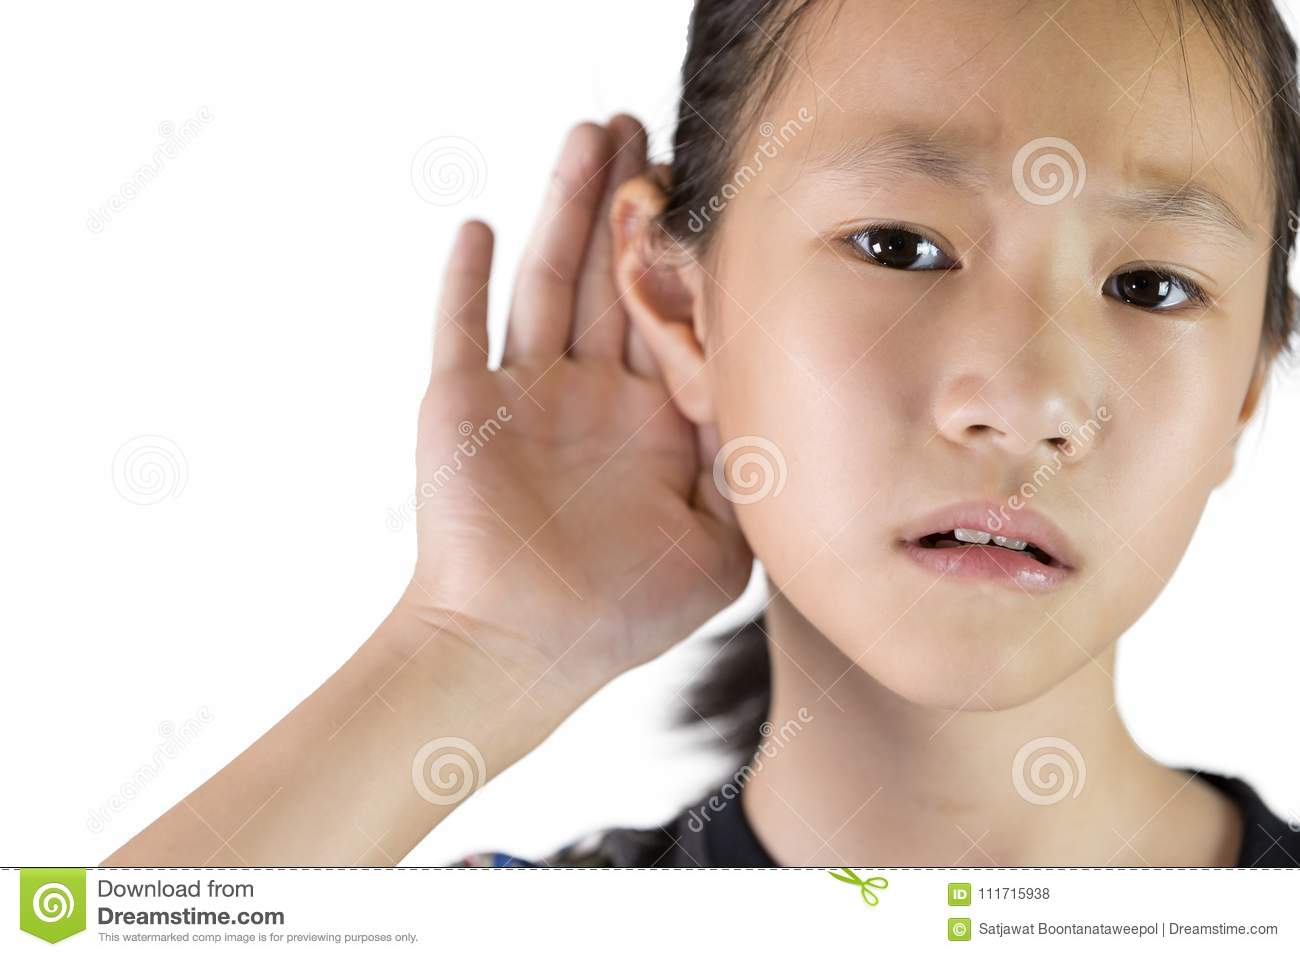 Asian girl listening by hand's up to the ear